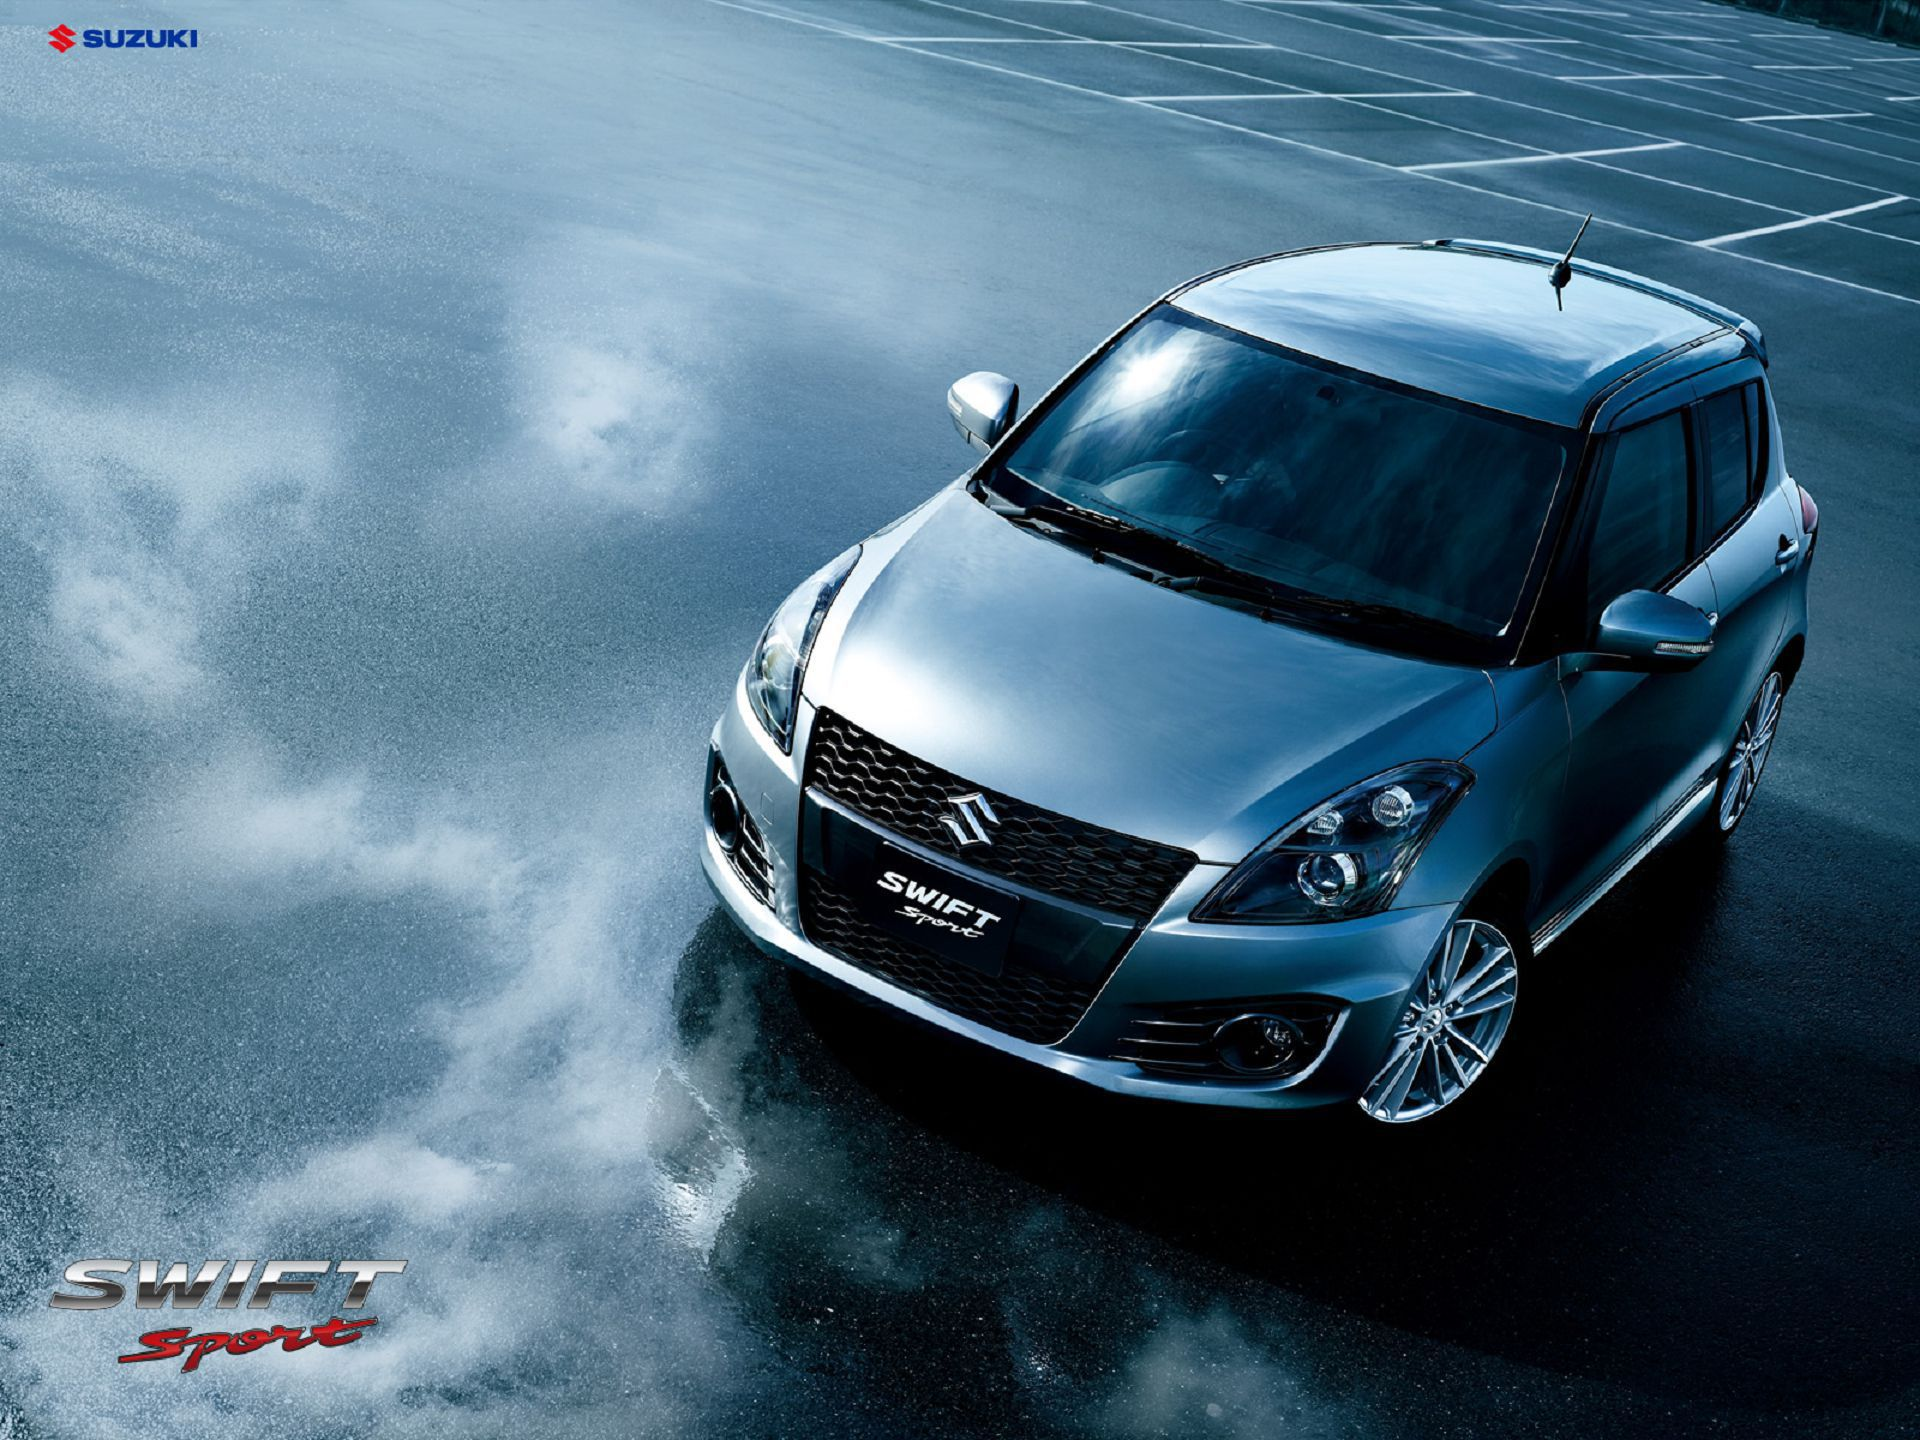 Suzuki Swift Sport Wallpapers Images Photos Pictures Backgrounds 1920x1440